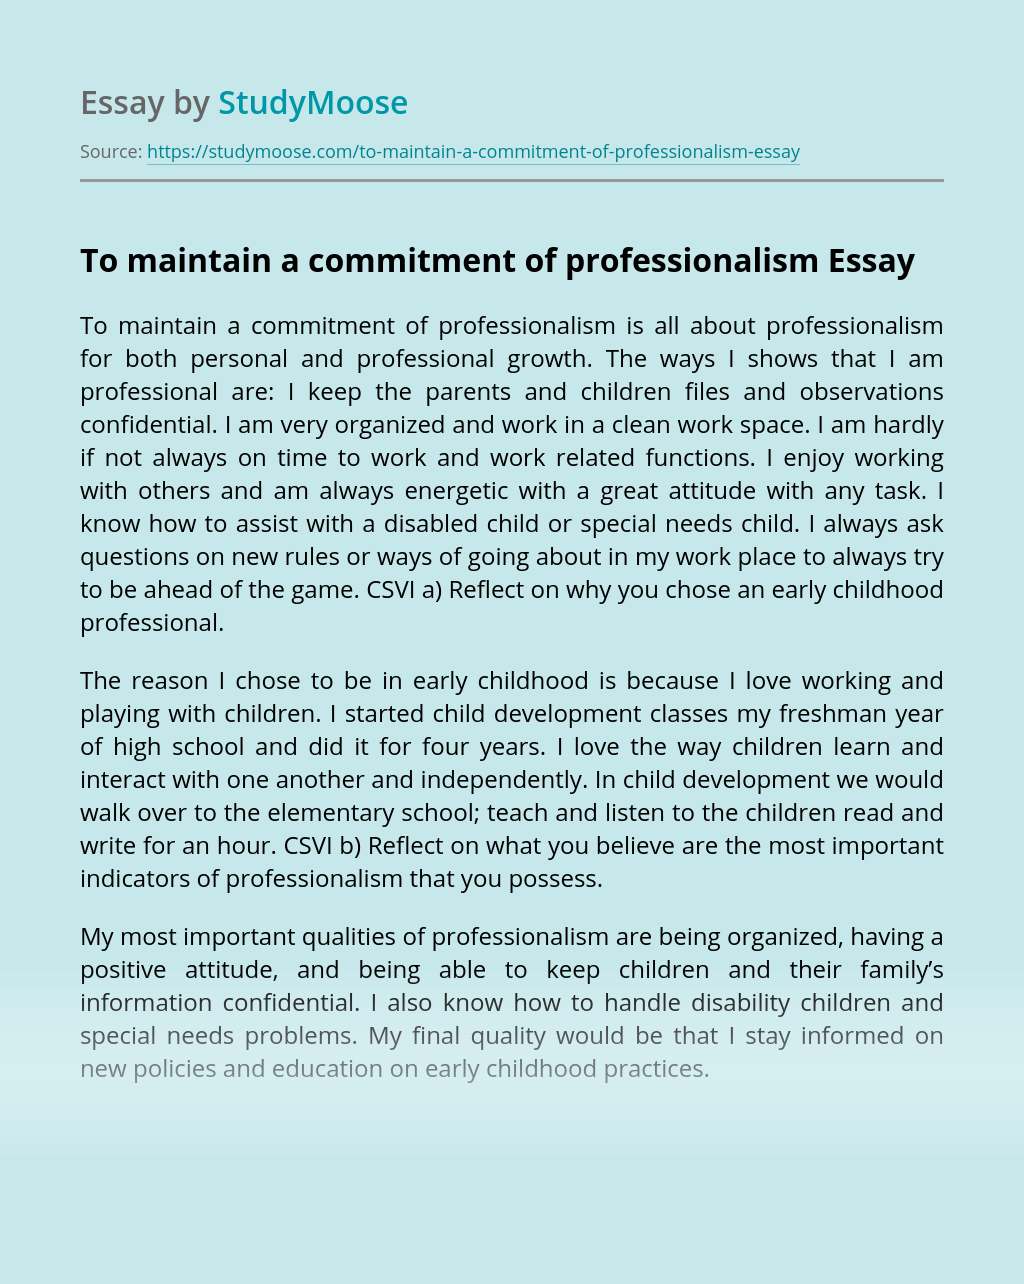 To maintain a commitment of professionalism